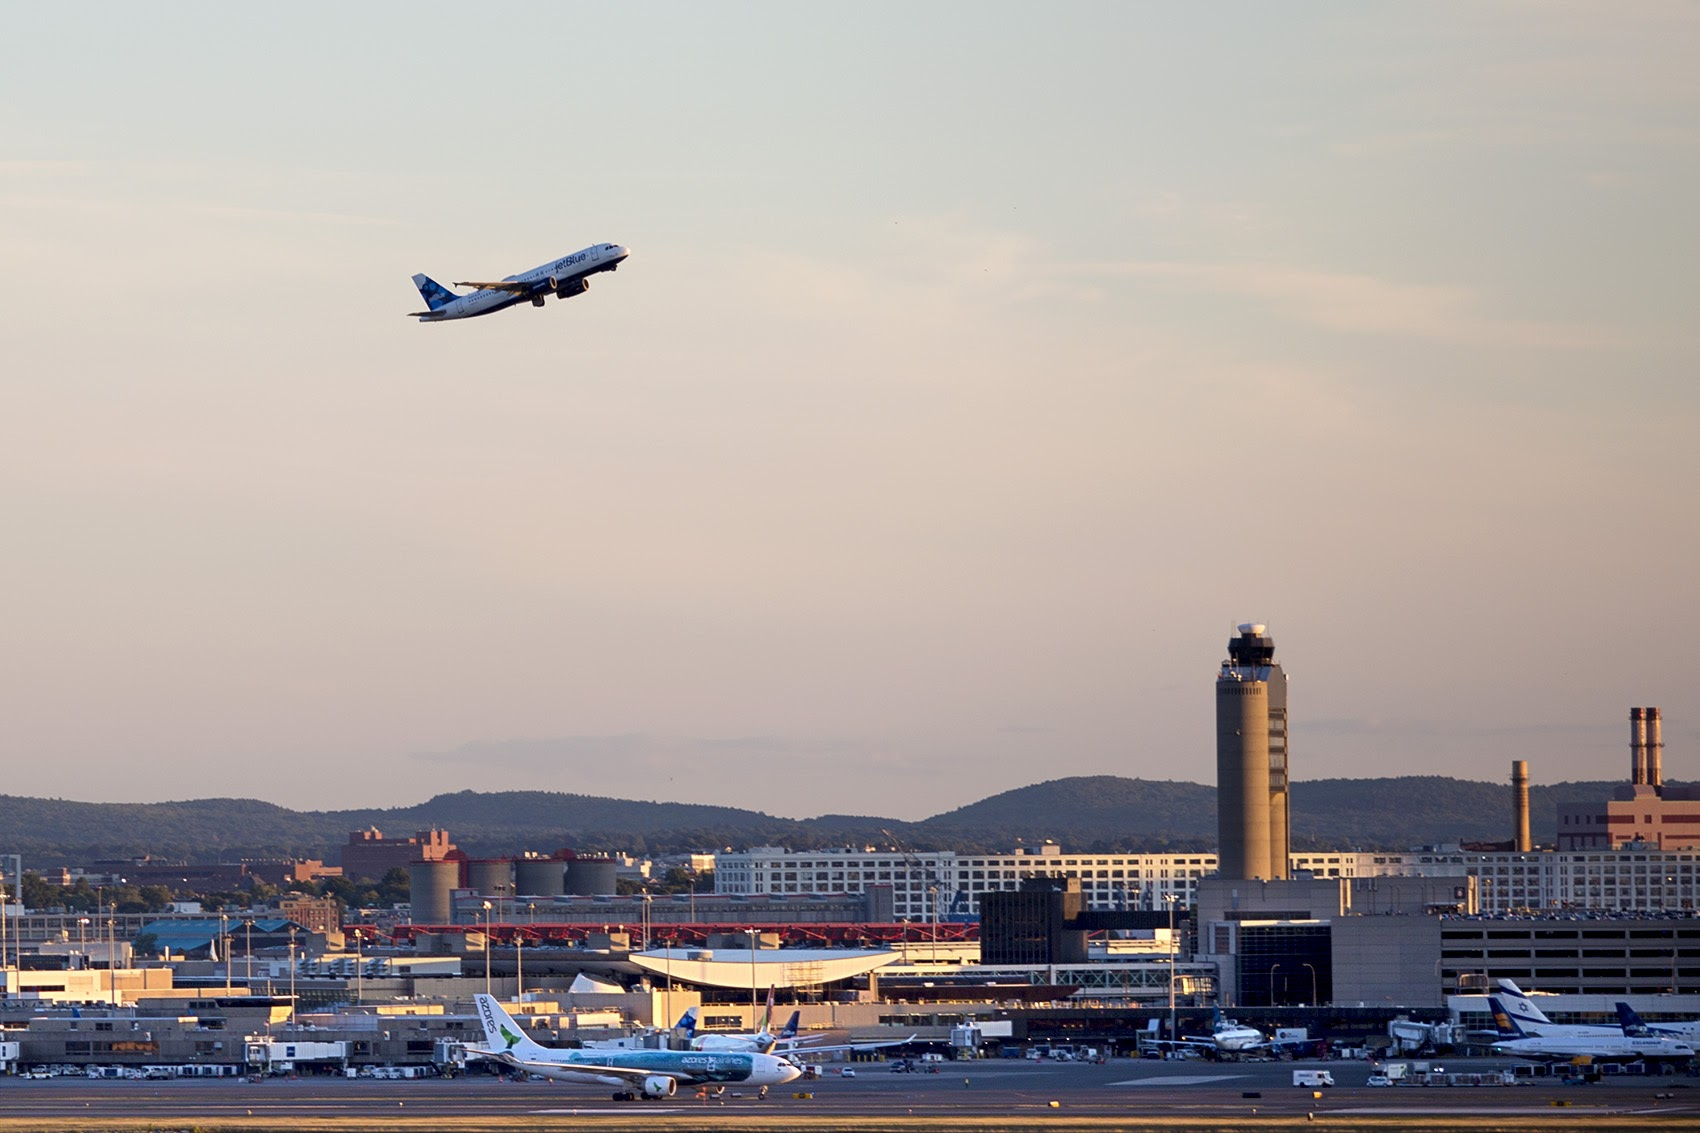 A Jet Blue airliner lifts off from Logan International Airport. (Jesse Costa/WBUR)